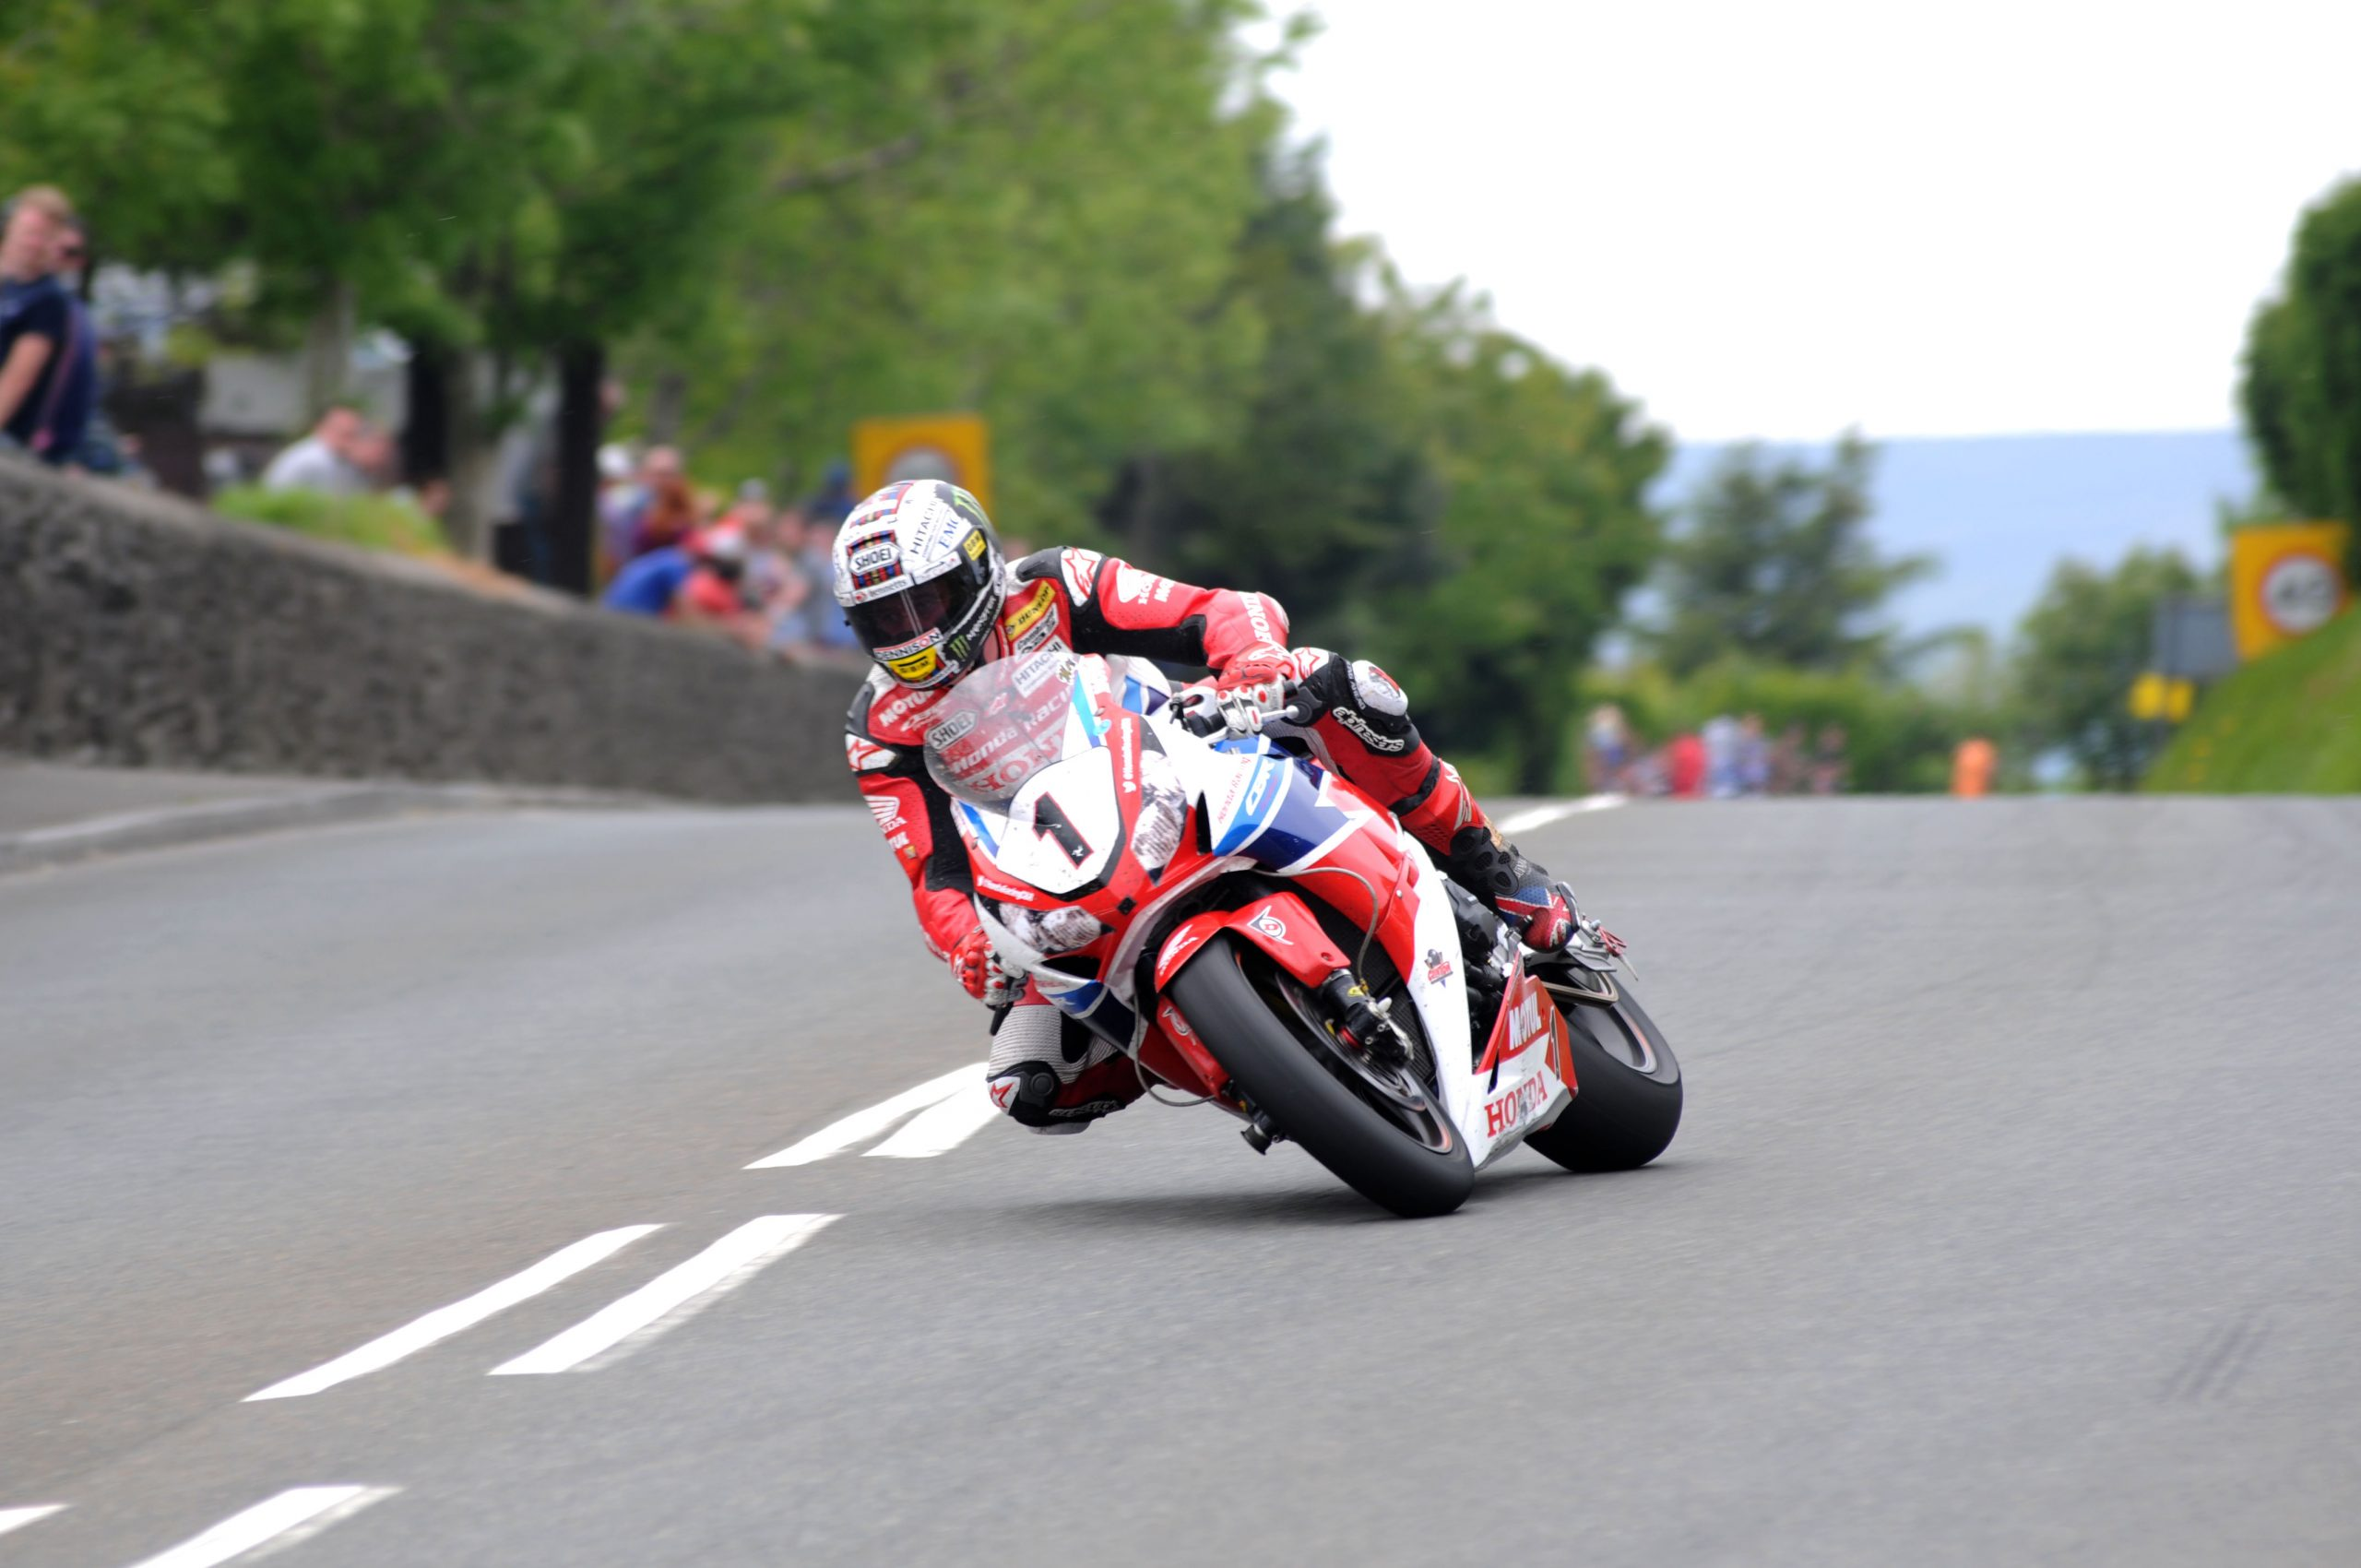 John McGuinness on the Honda Racing Fireblade at Signpost during the the Pokerstars Senior TT race at the 2015 Monster Energy Isle of Man TT